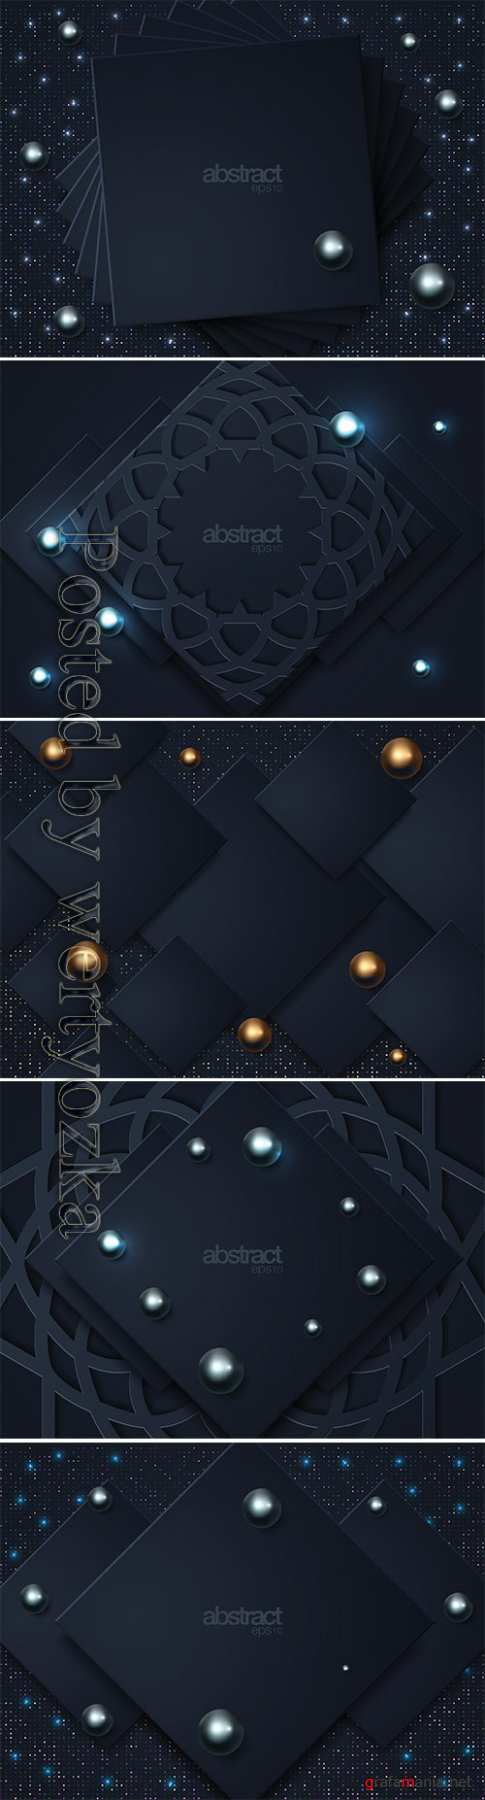 Abstract 3d background with pearls